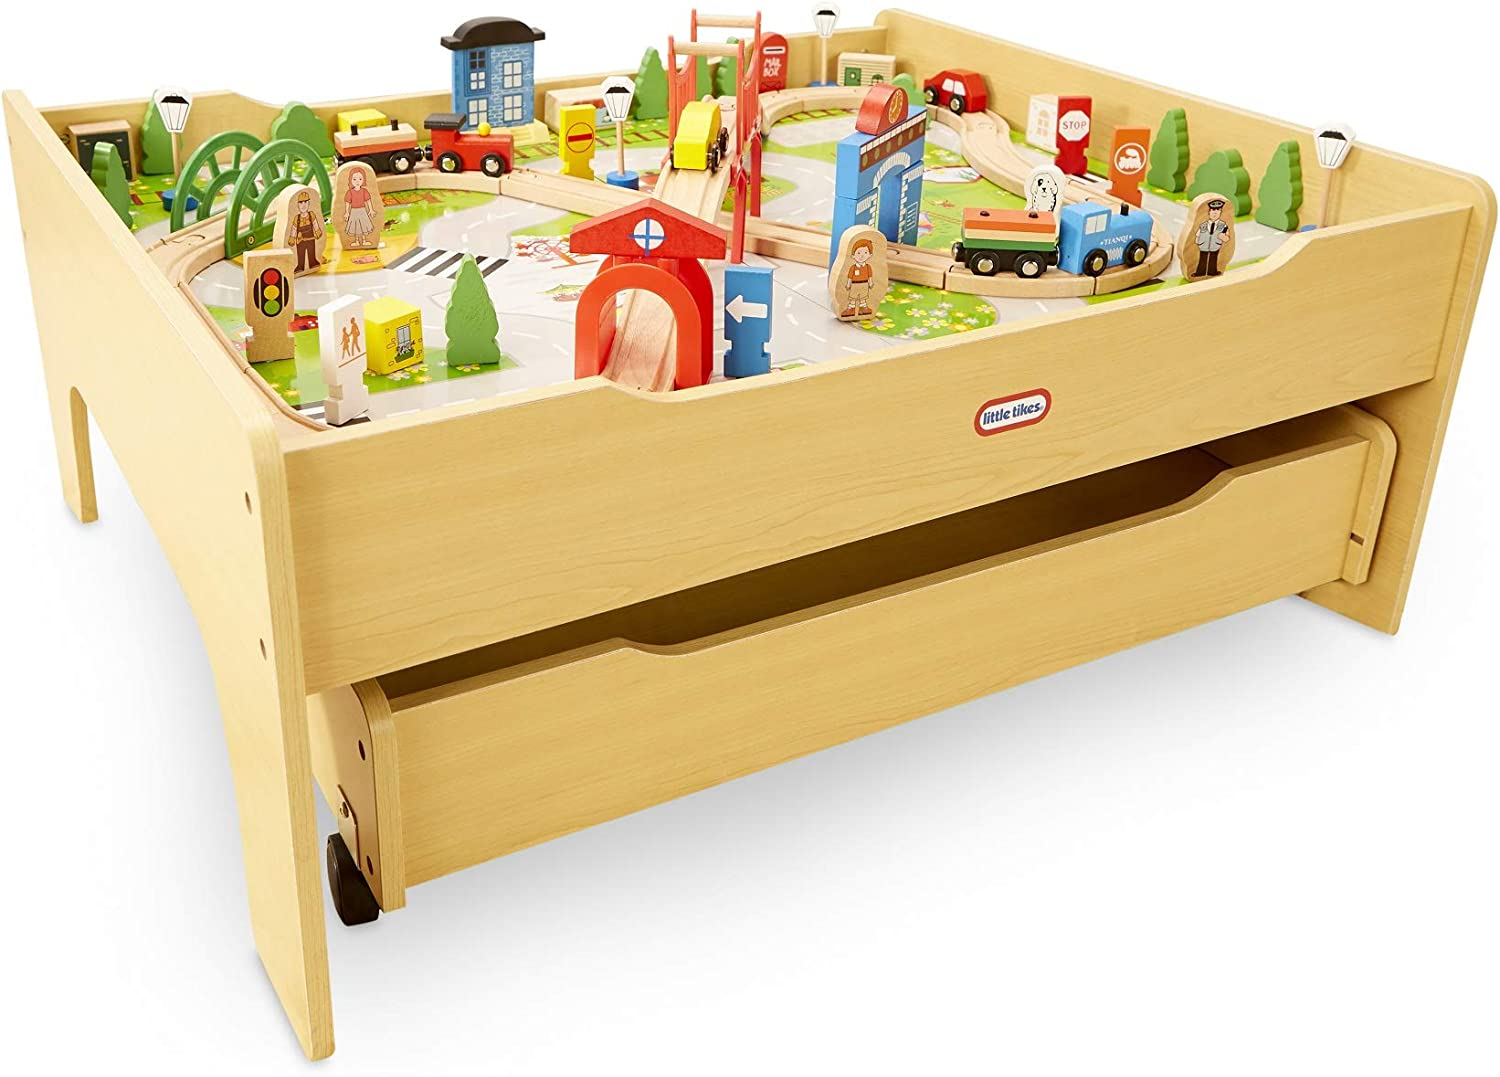 Little Tikes Real Wooden Train and Kids Table Over 80 Sale Detroit Mall special price Set M with